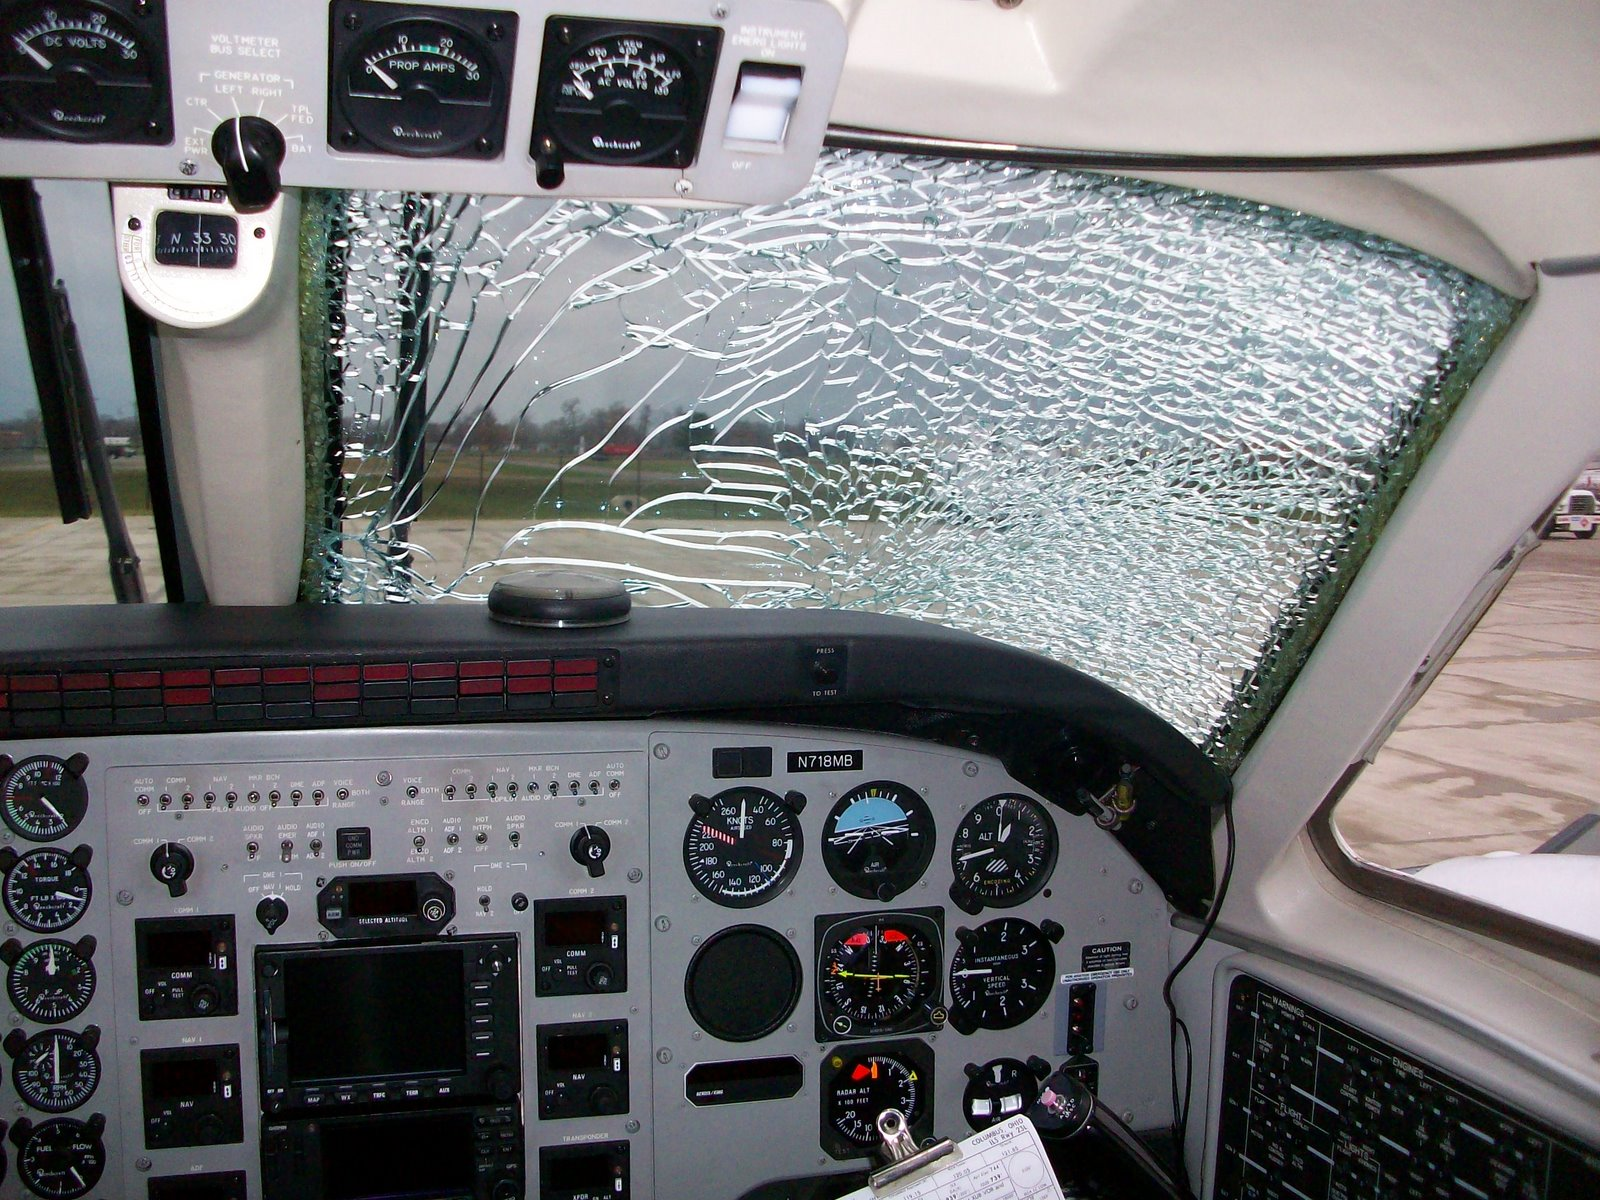 [Shattered+windshield]